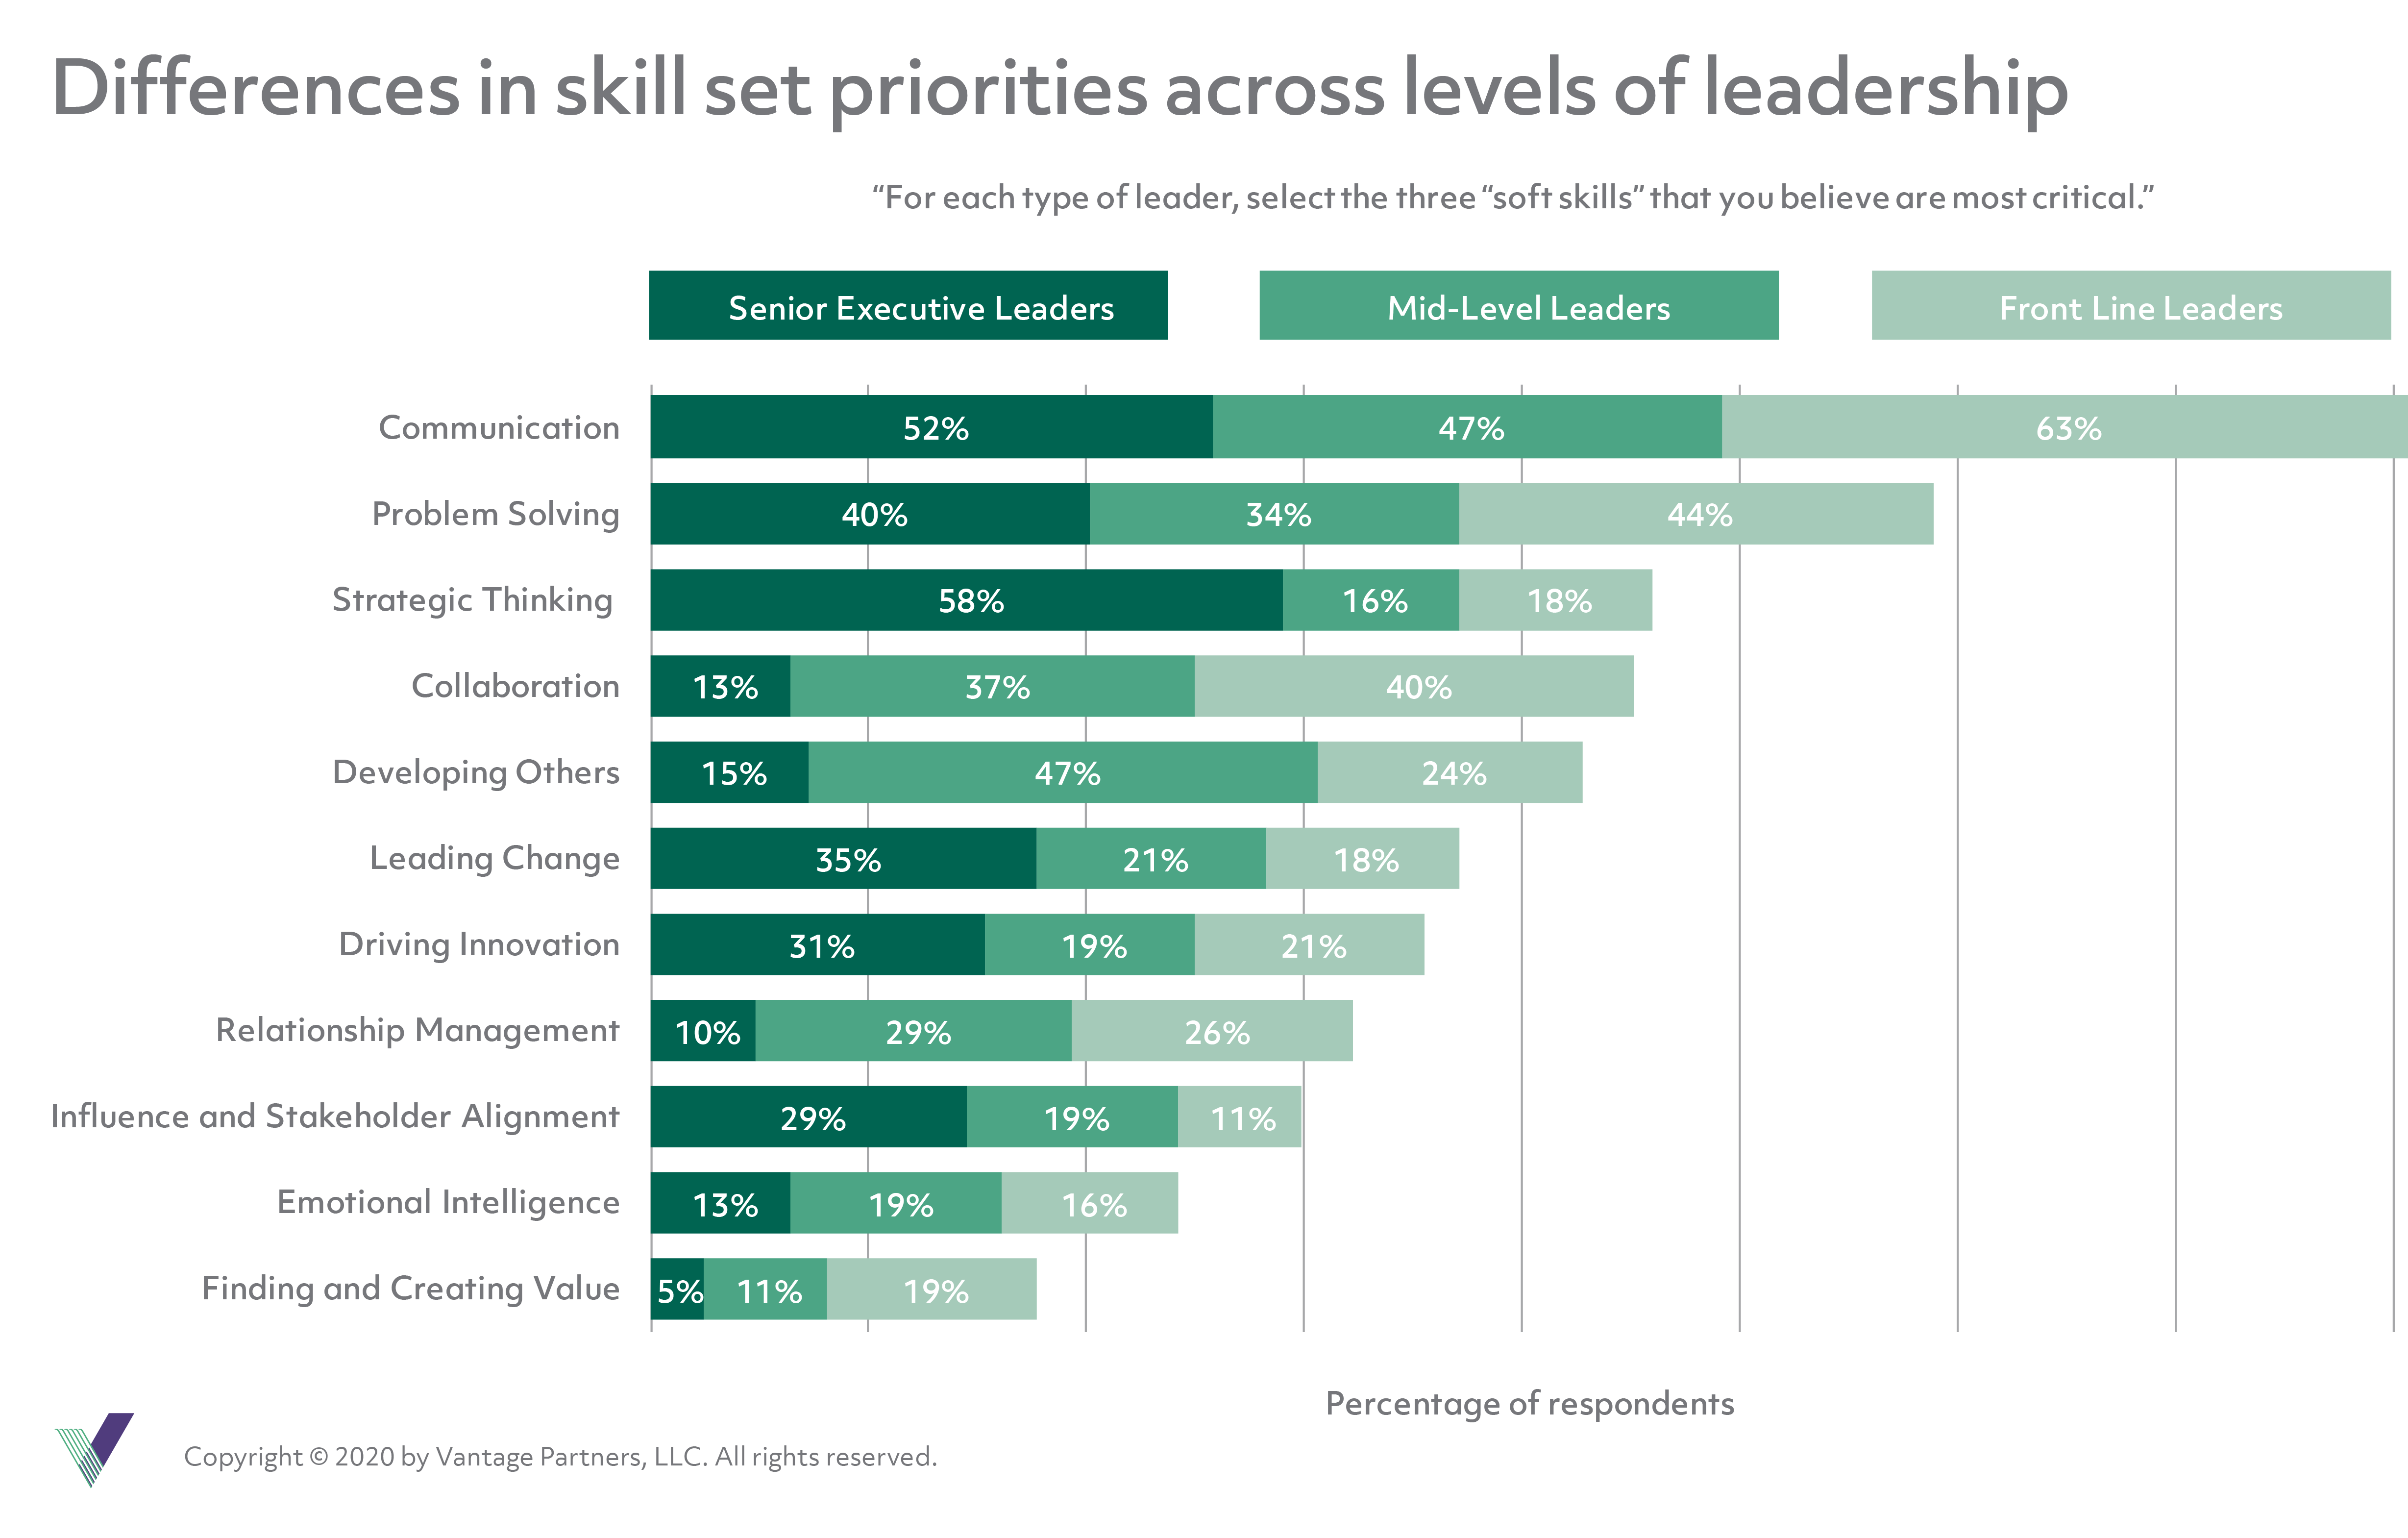 Differences in skill set priorities